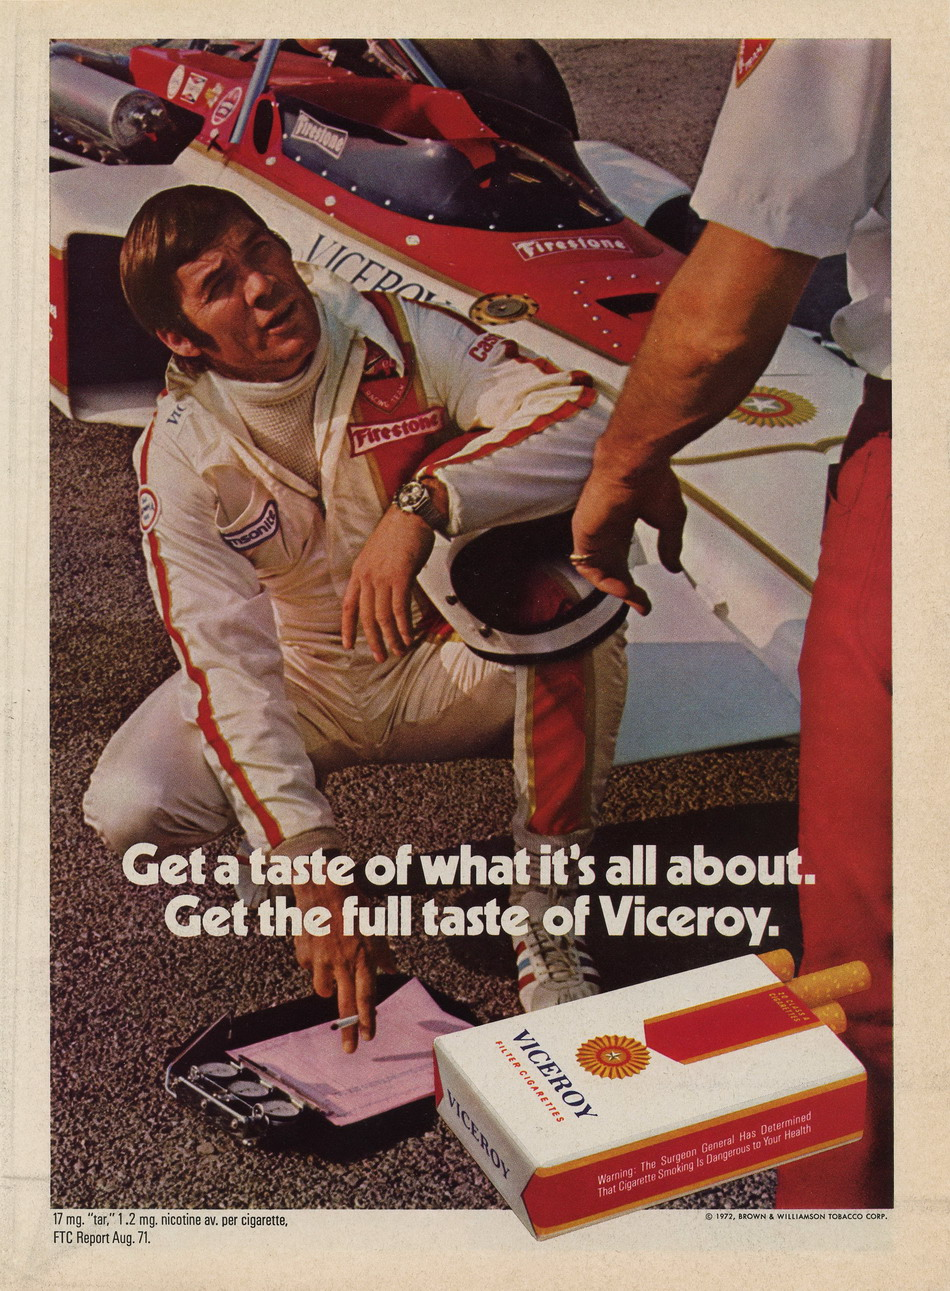 Viceroy Ad from 1972